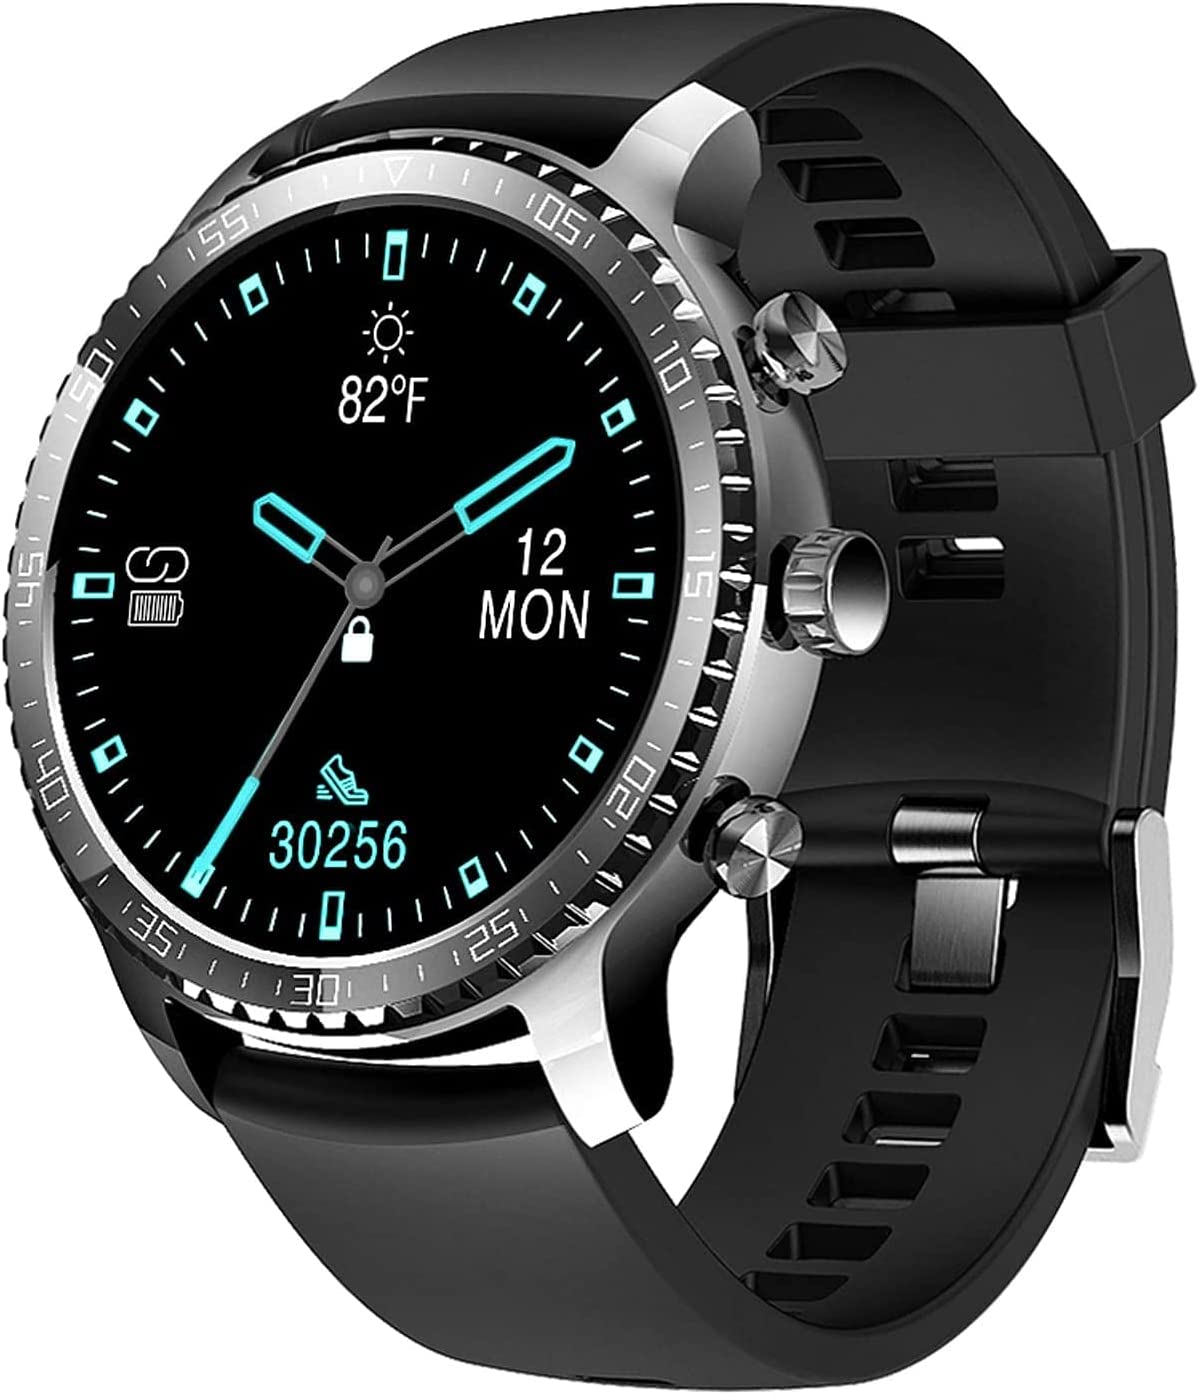 Tinwoo Smart Watch for Men,46mm Support Wireless Charging,Bluetooth Fitness Tracker with Heart Rate Monitor, Smartwatch for Android Phones…